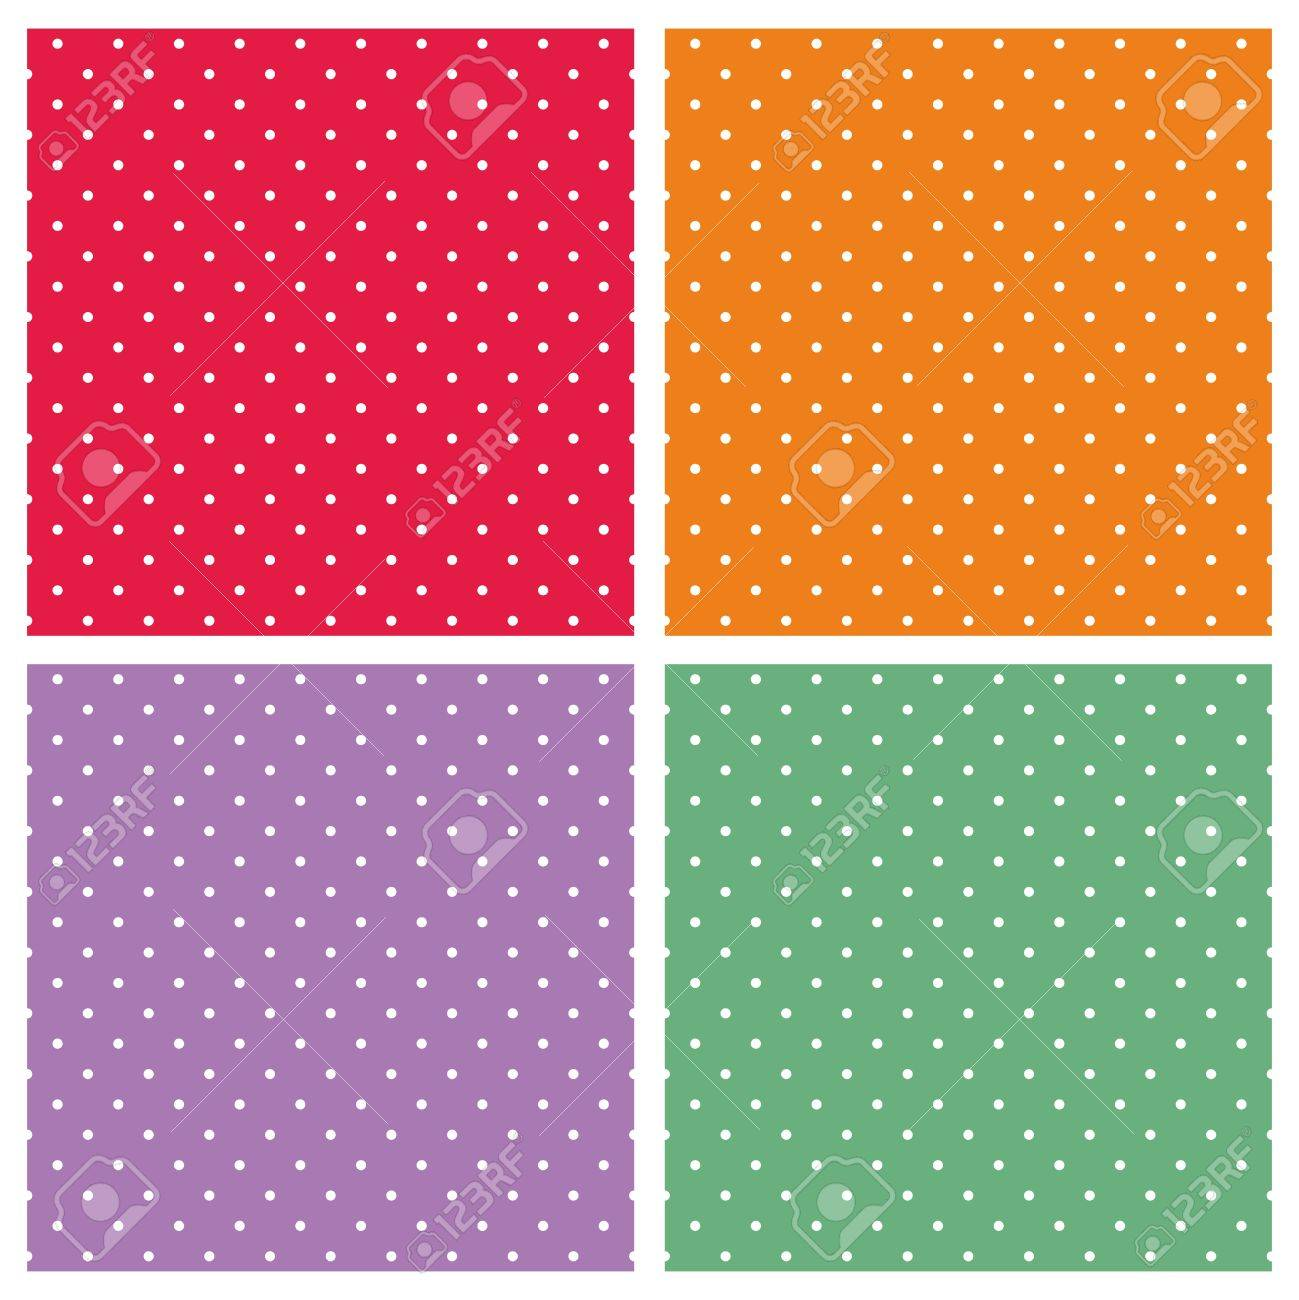 sweet tile by design. Vector  set with sweet tile patterns white polka dots on pastel colorful summer background red orange violet and green for desktop Set With Sweet Tile Patterns White Polka Dots On